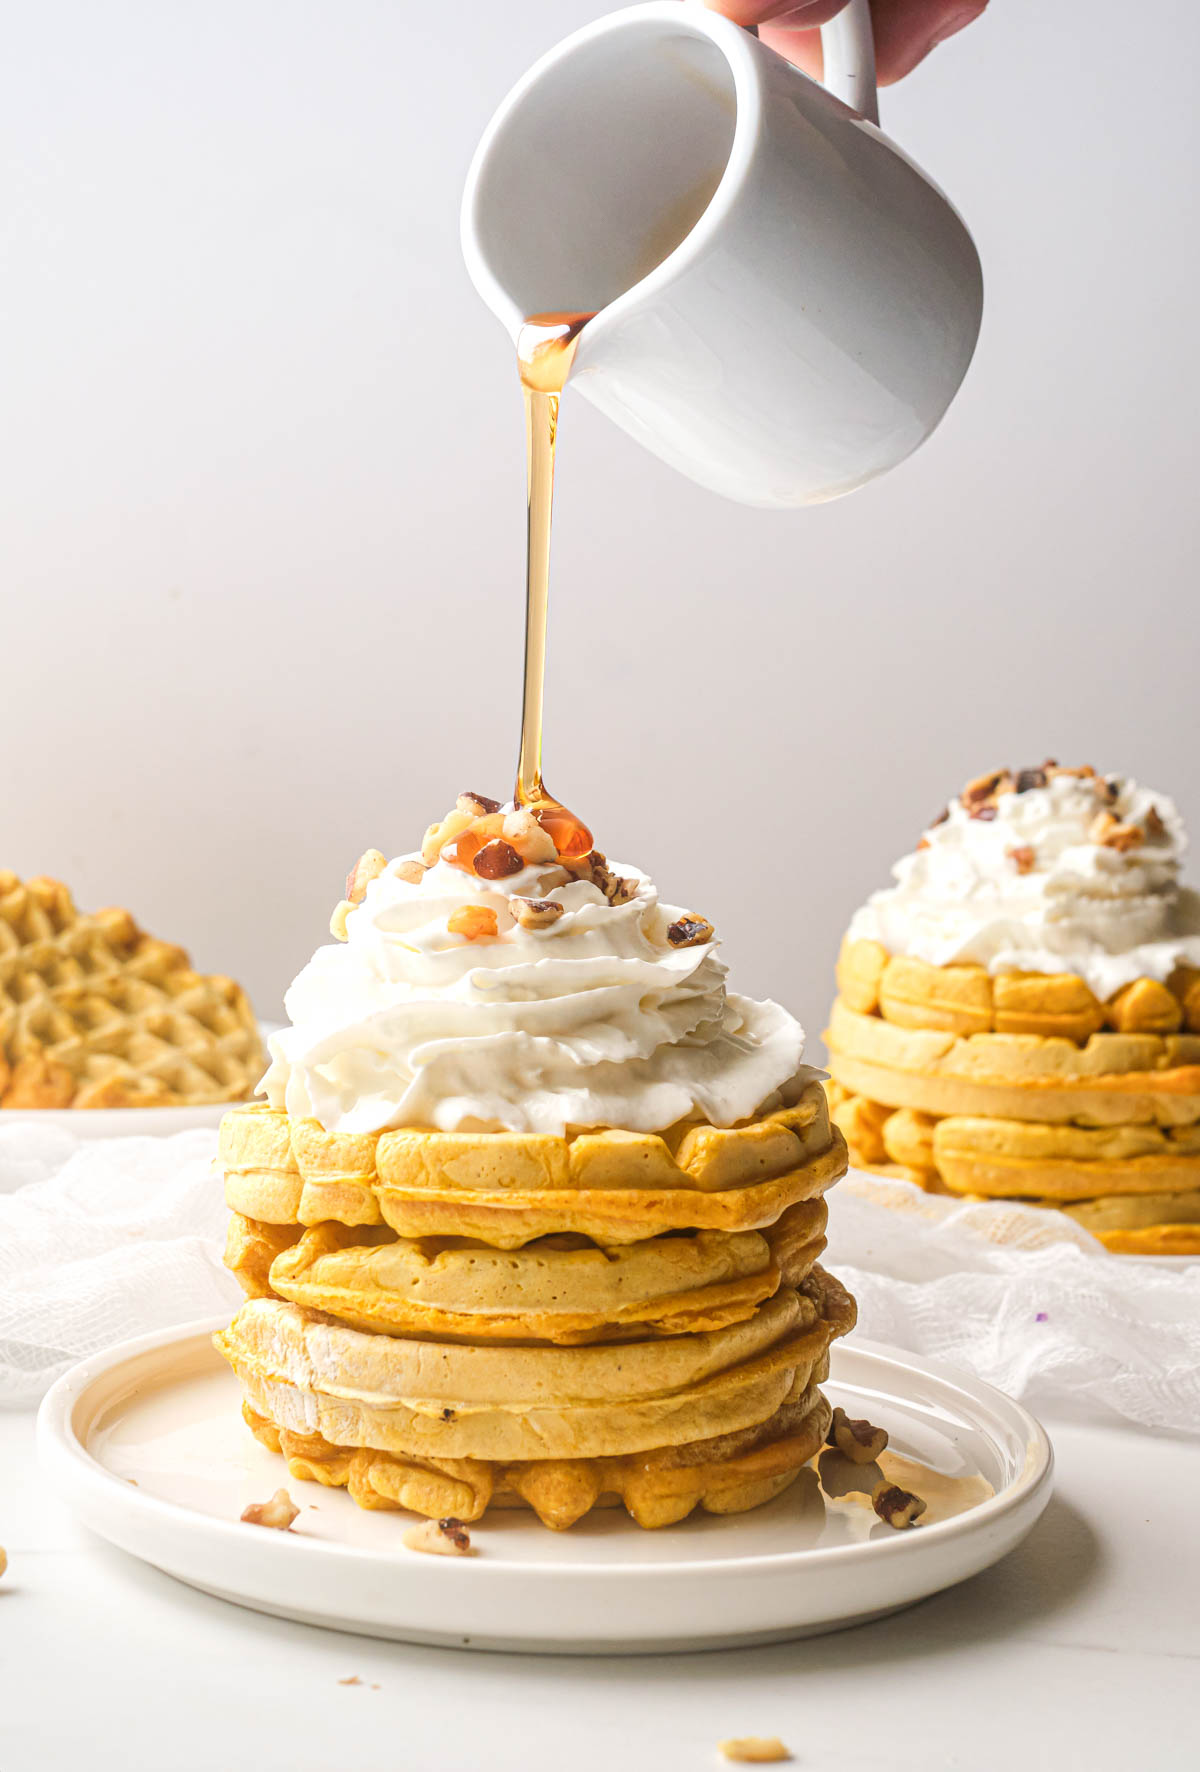 the finished pumpkin waffles ready to be served